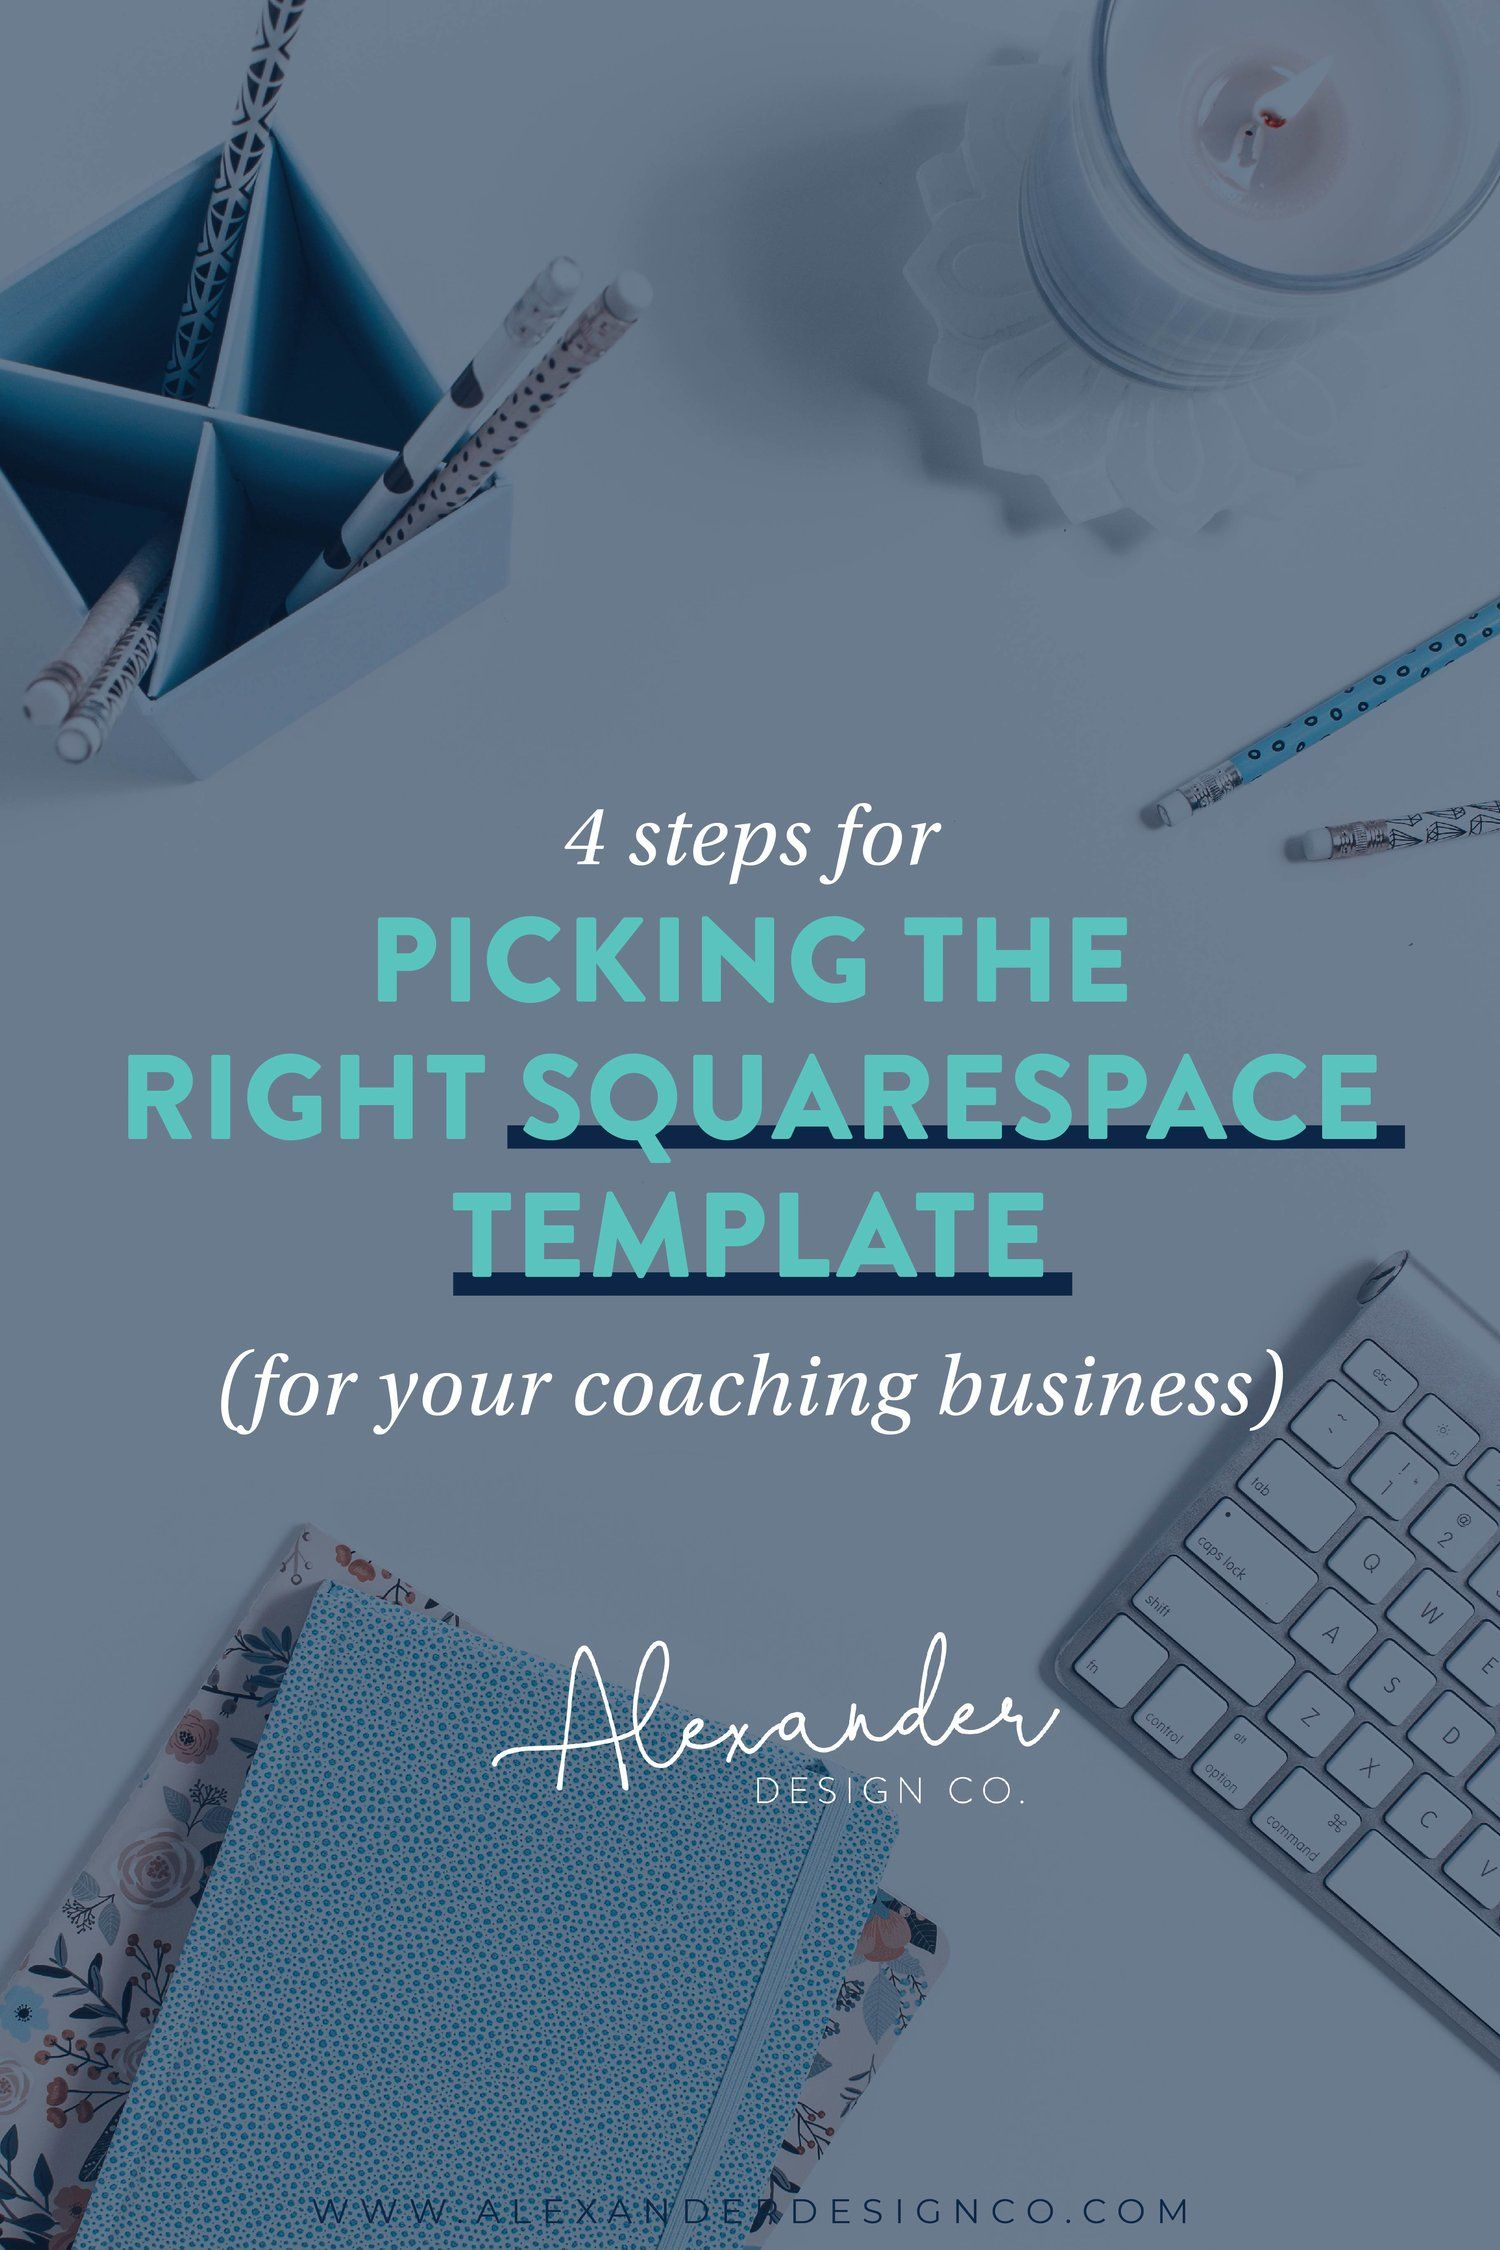 Choosing A Squarespace Template For Your Coaching Business